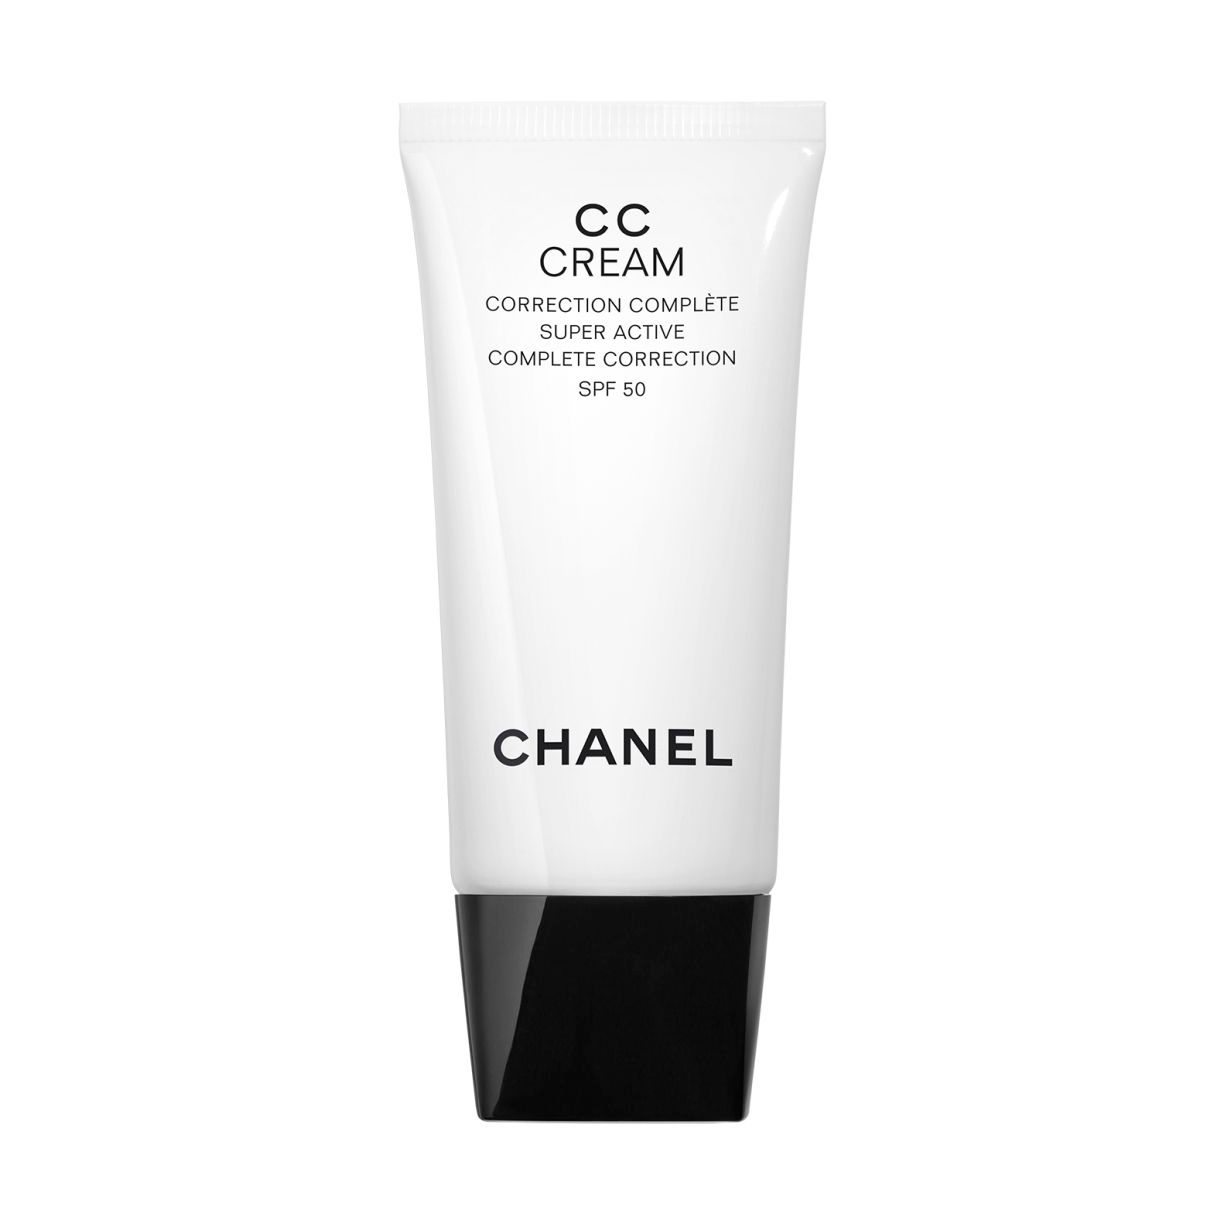 CC CREAM SUPER ACTIVE COMPLETE CORRECTION SPF 30 10 - BEIGE